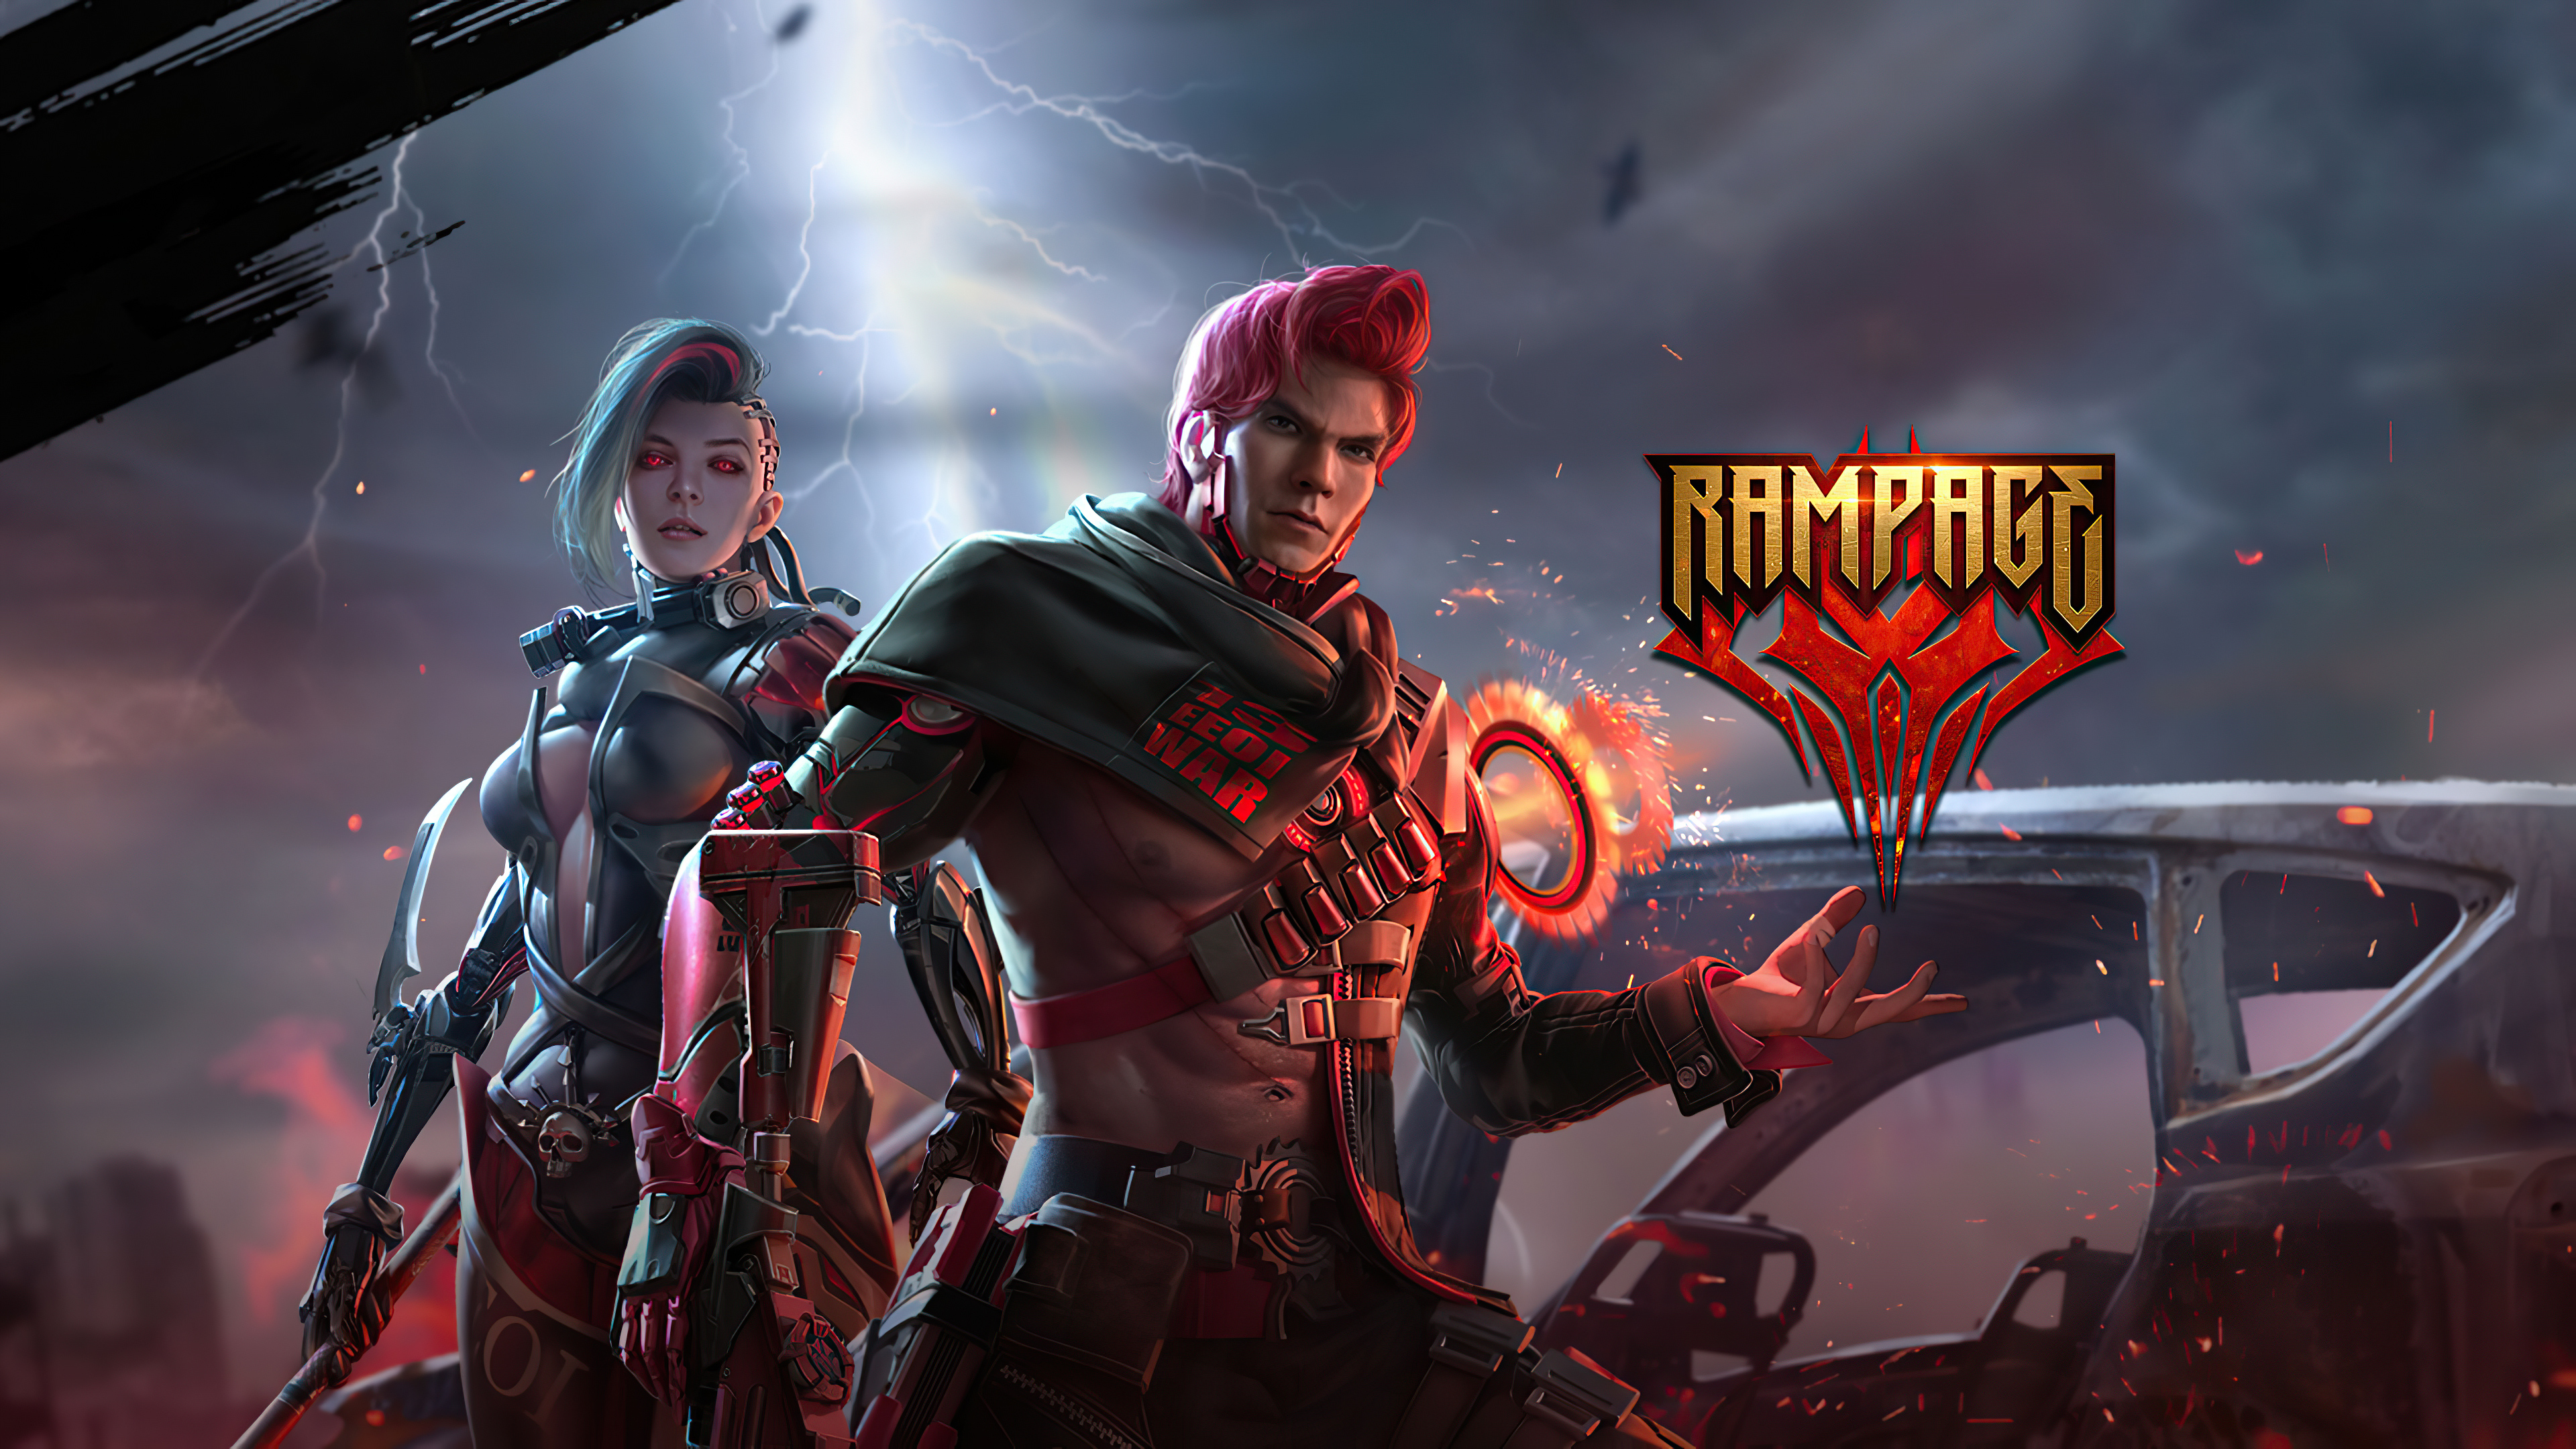 Garena Free Fire Rampage 4k Hd Games 4k Wallpapers Images Backgrounds Photos And Pictures